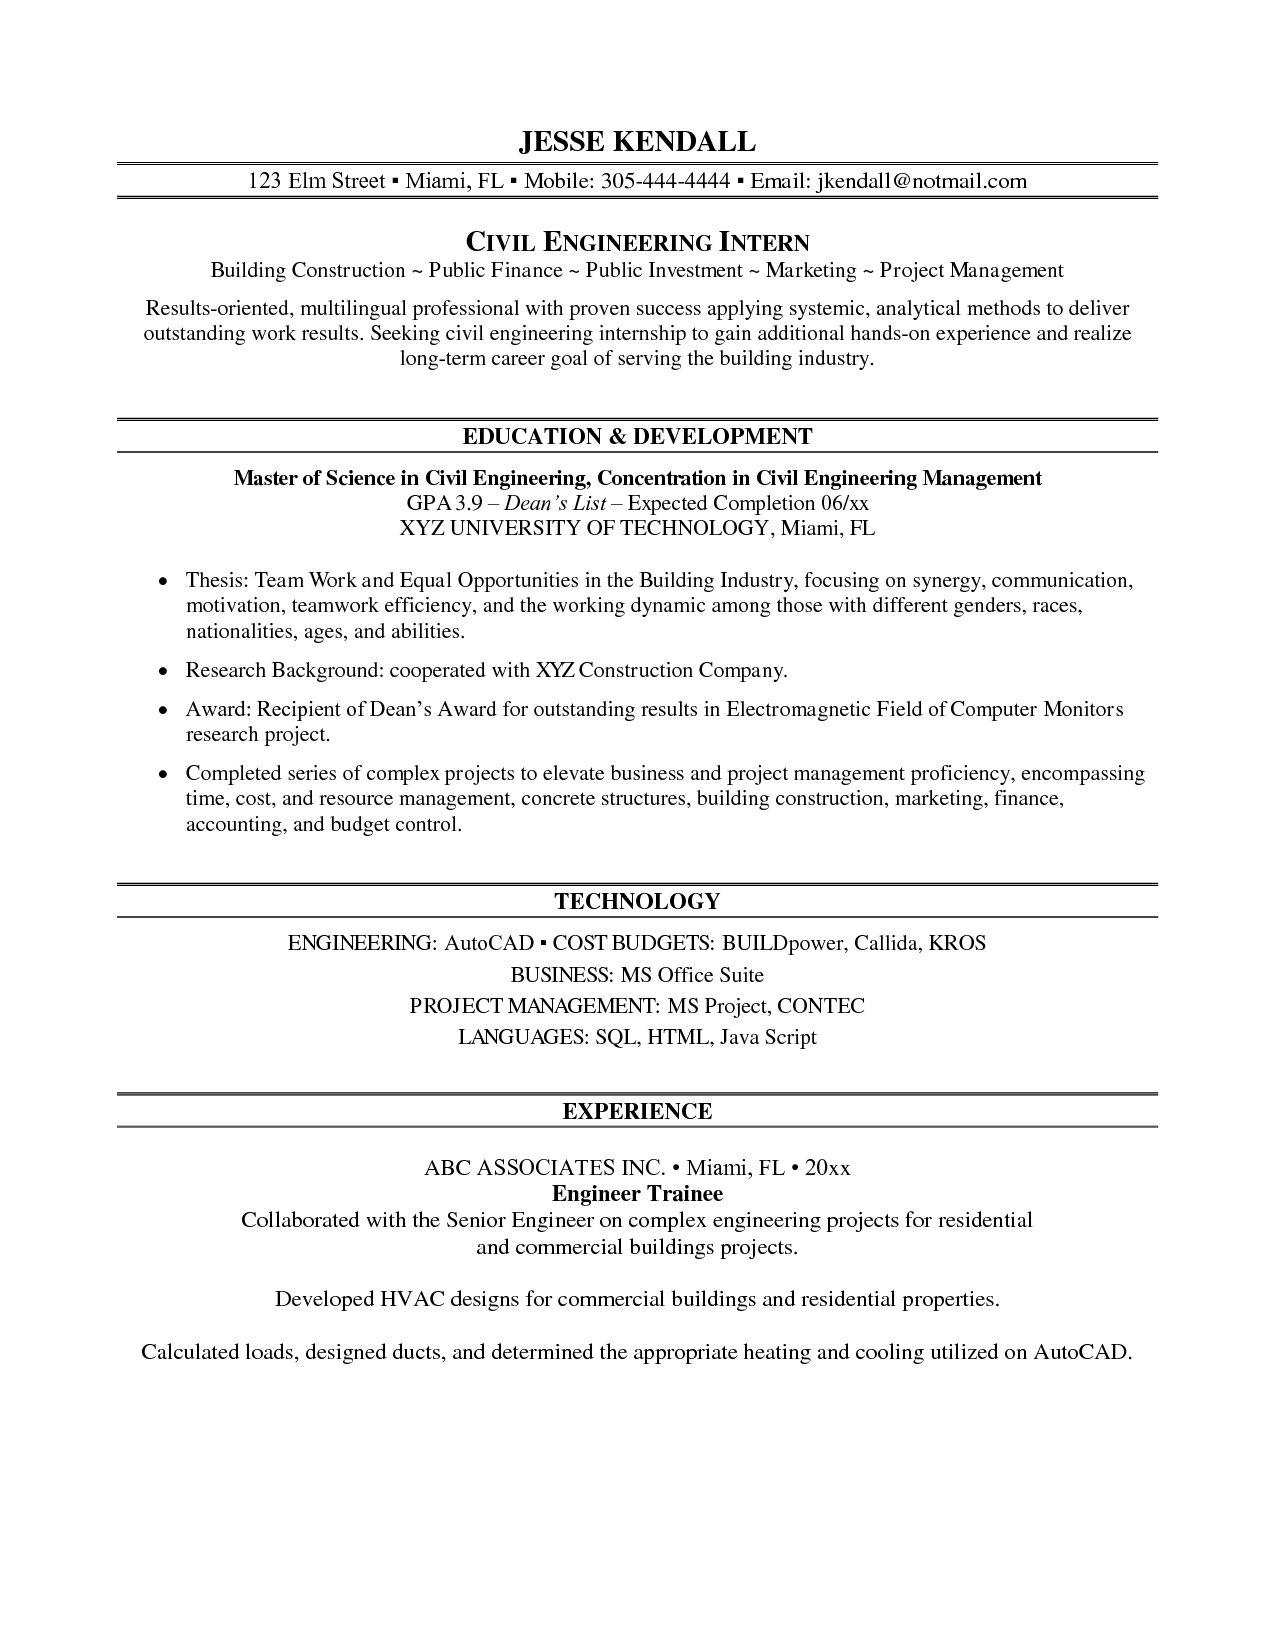 marketing internship cover letter cover letter for marketing